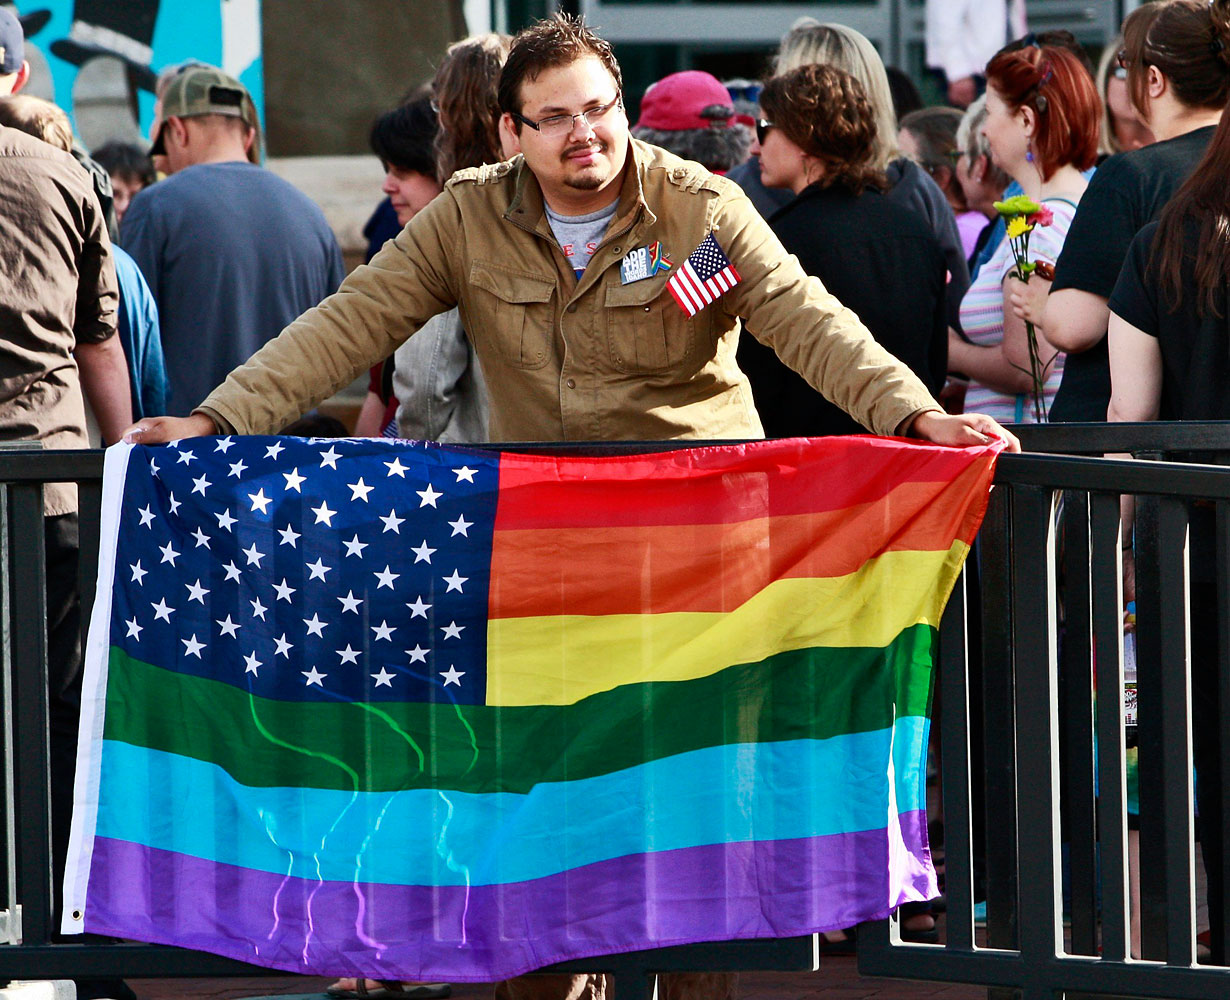 A gay marriage supporter holds his interpretation of the American flag at a rally for gay marriage at the Ada County Court House  in Boise, Idaho May 16, 2014.